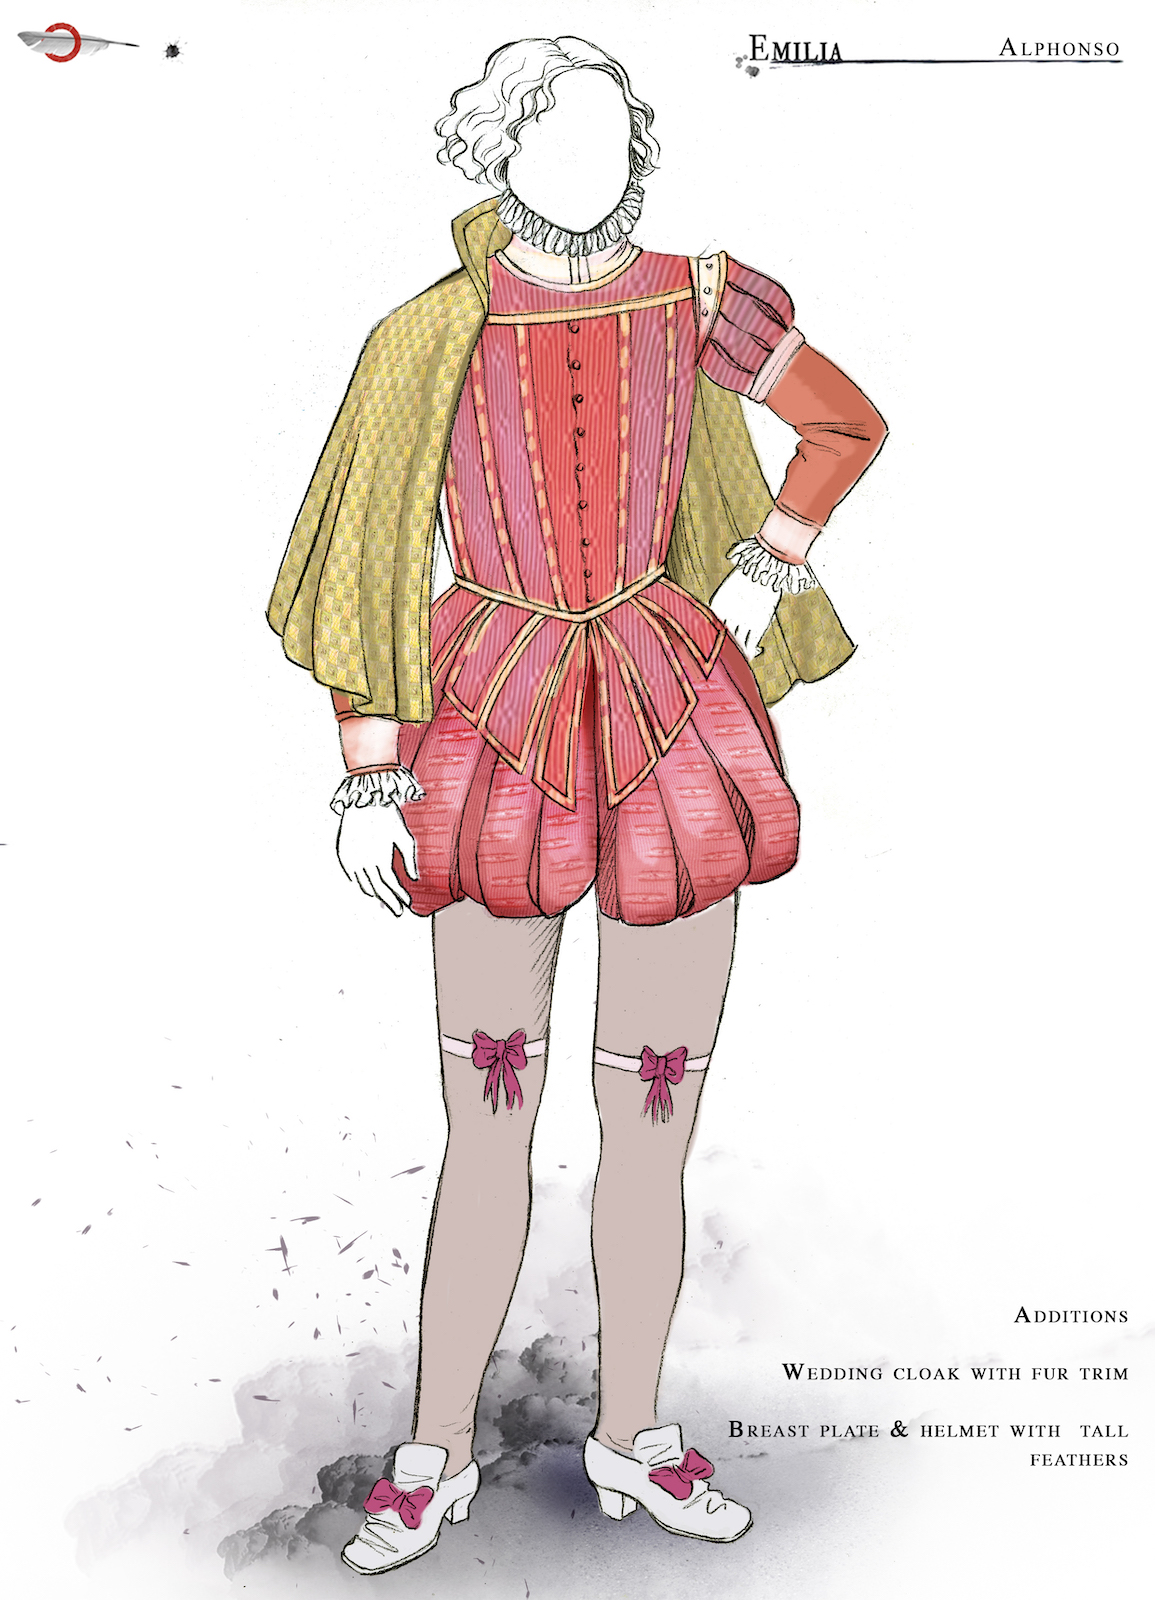 A costume sketch of male Elizabethan clothing complete short breeches and a ruff